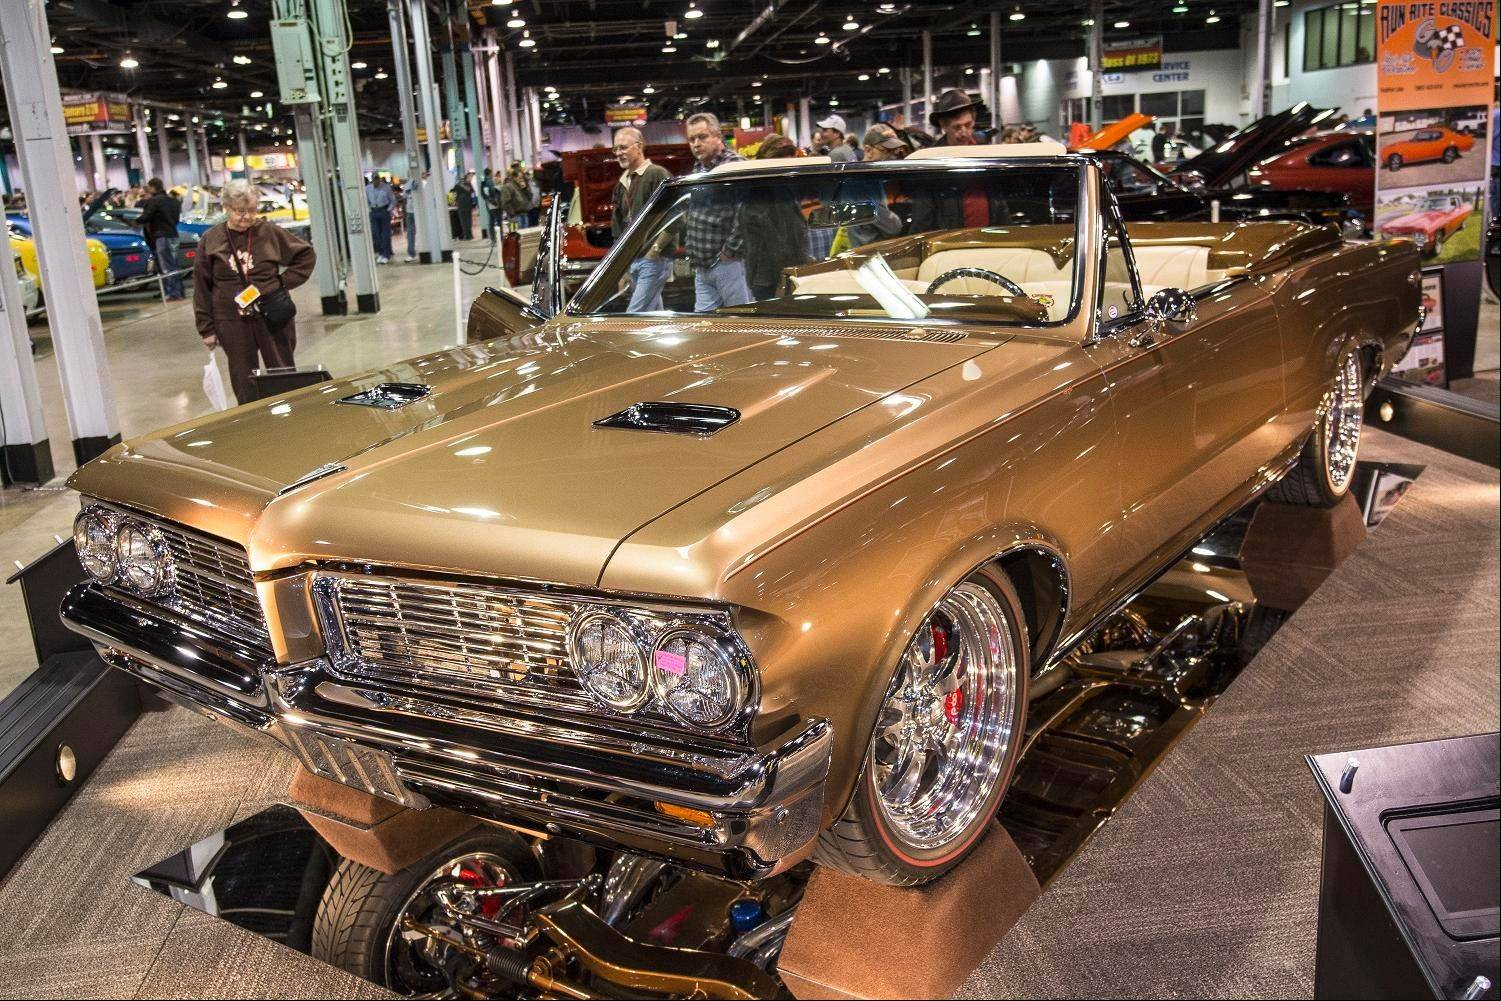 One of the most visually appealing things about John and Peggy Sieffert's 1964 Pontiac GTO is its shiny coat of Mocha and Crème Brulee paint.